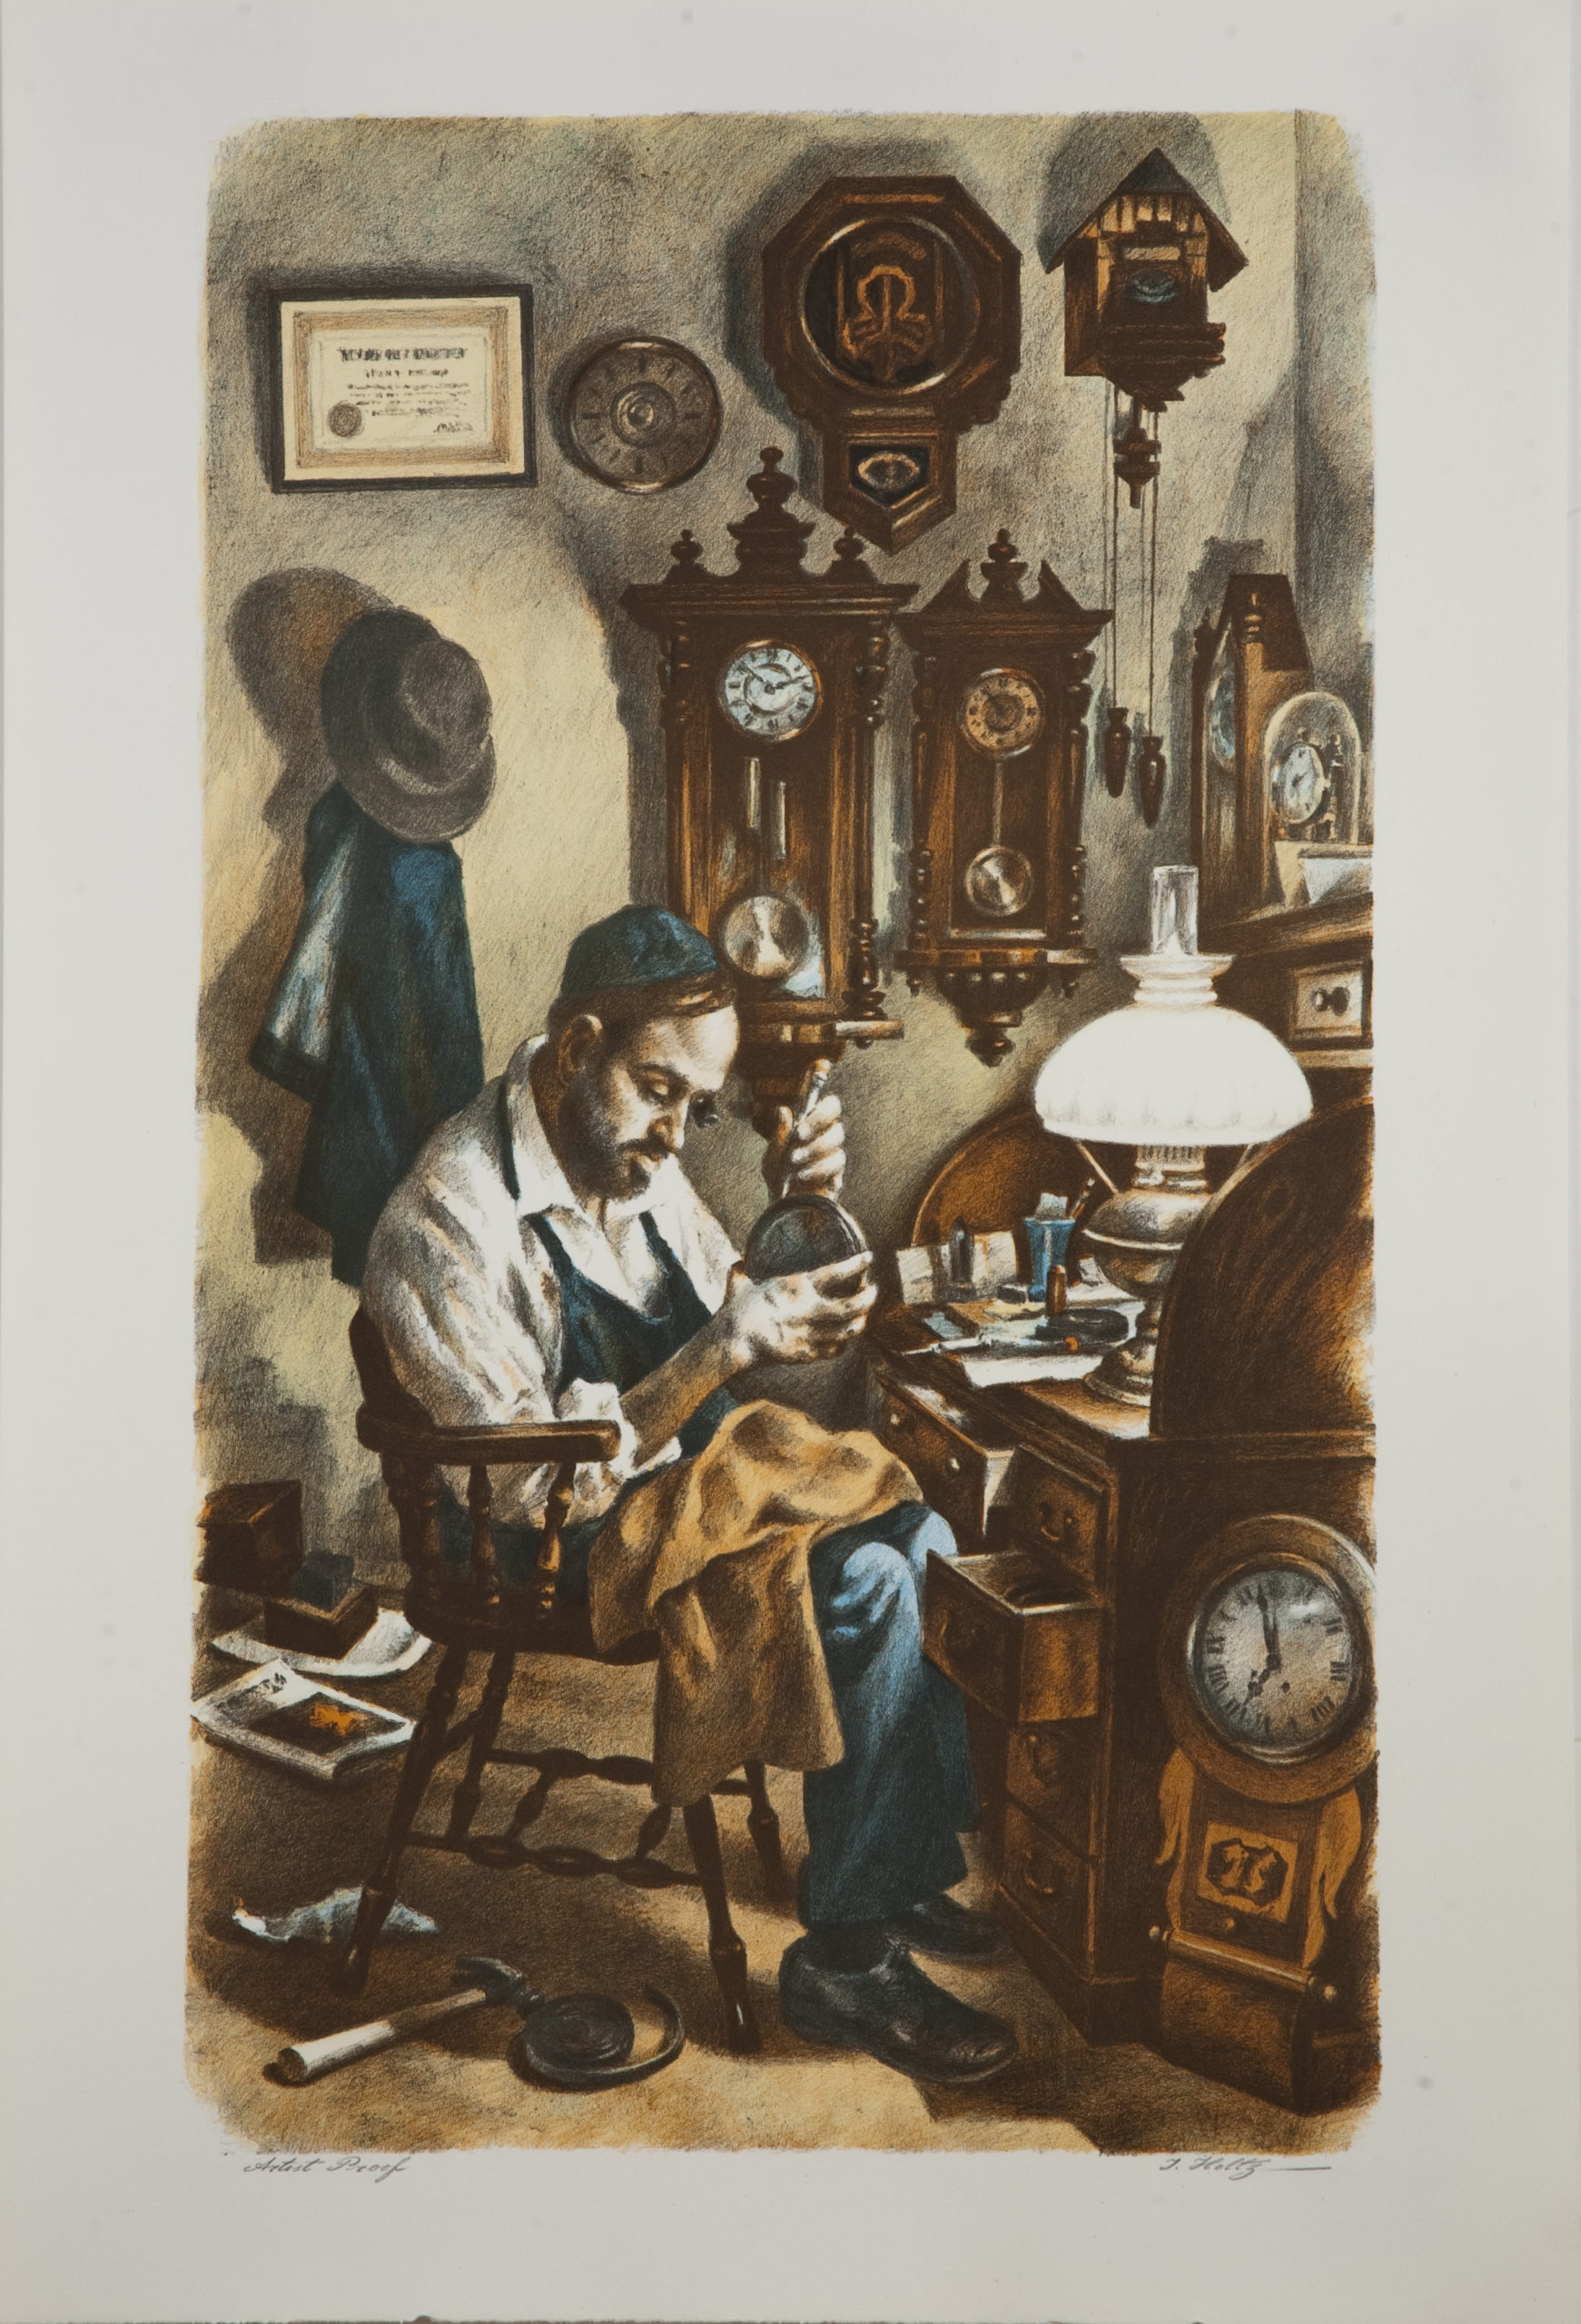 L22 Clockmaker - Color - Lithograph - 20 x 29.5 - No Frame - $620